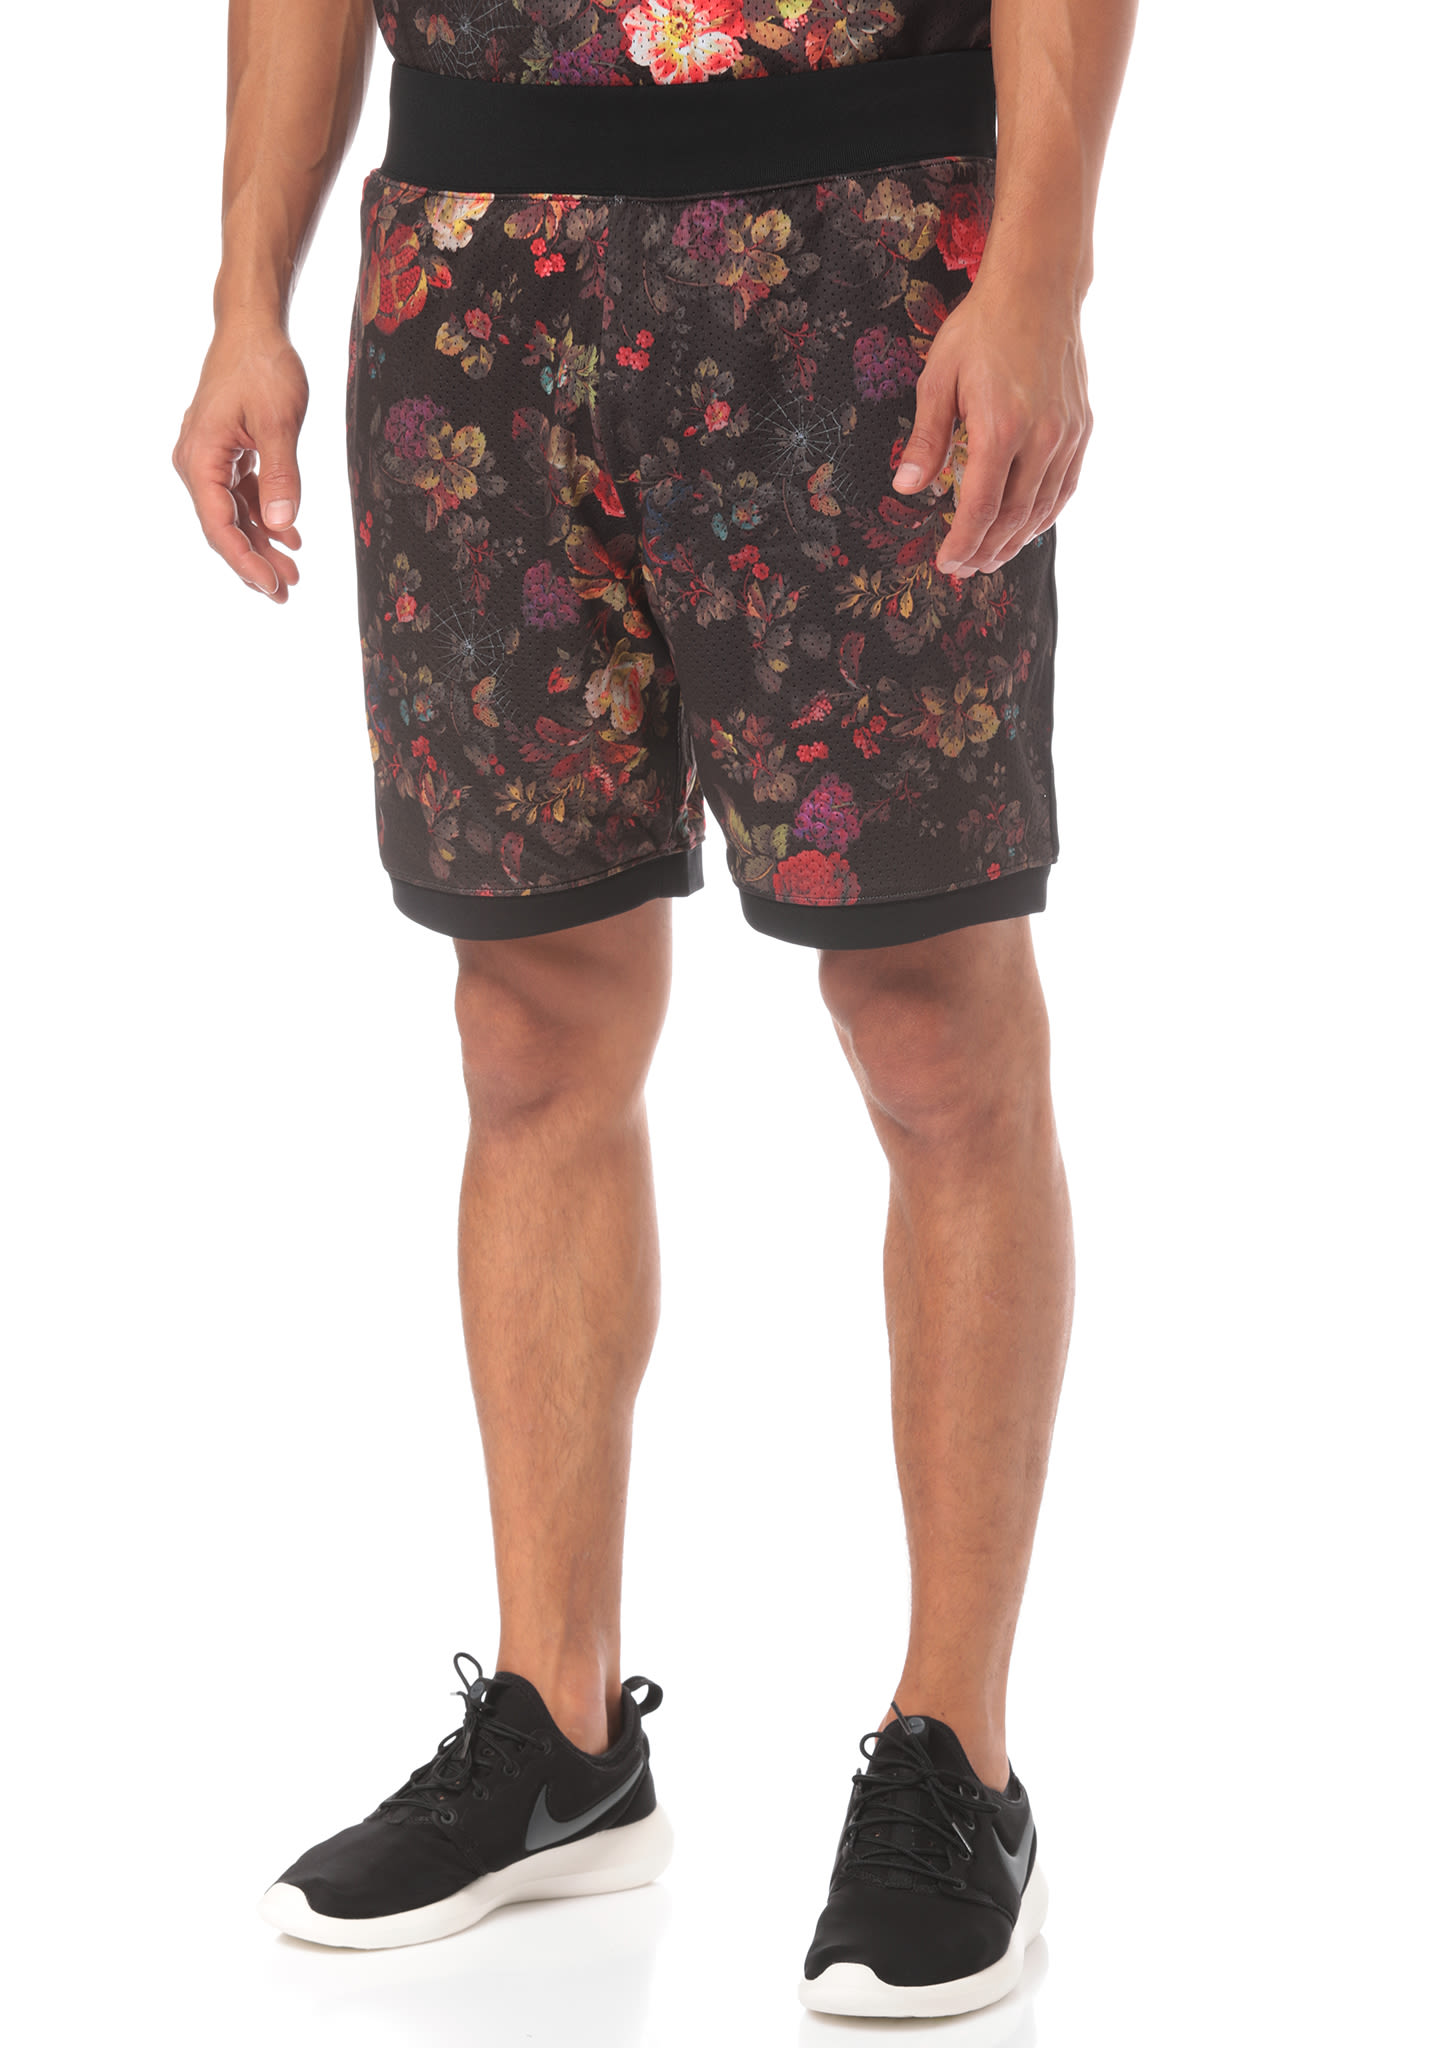 low priced 3b8f6 488a1 NIKE SB Dry Floral - Shorts for Men - Black - Planet Sports